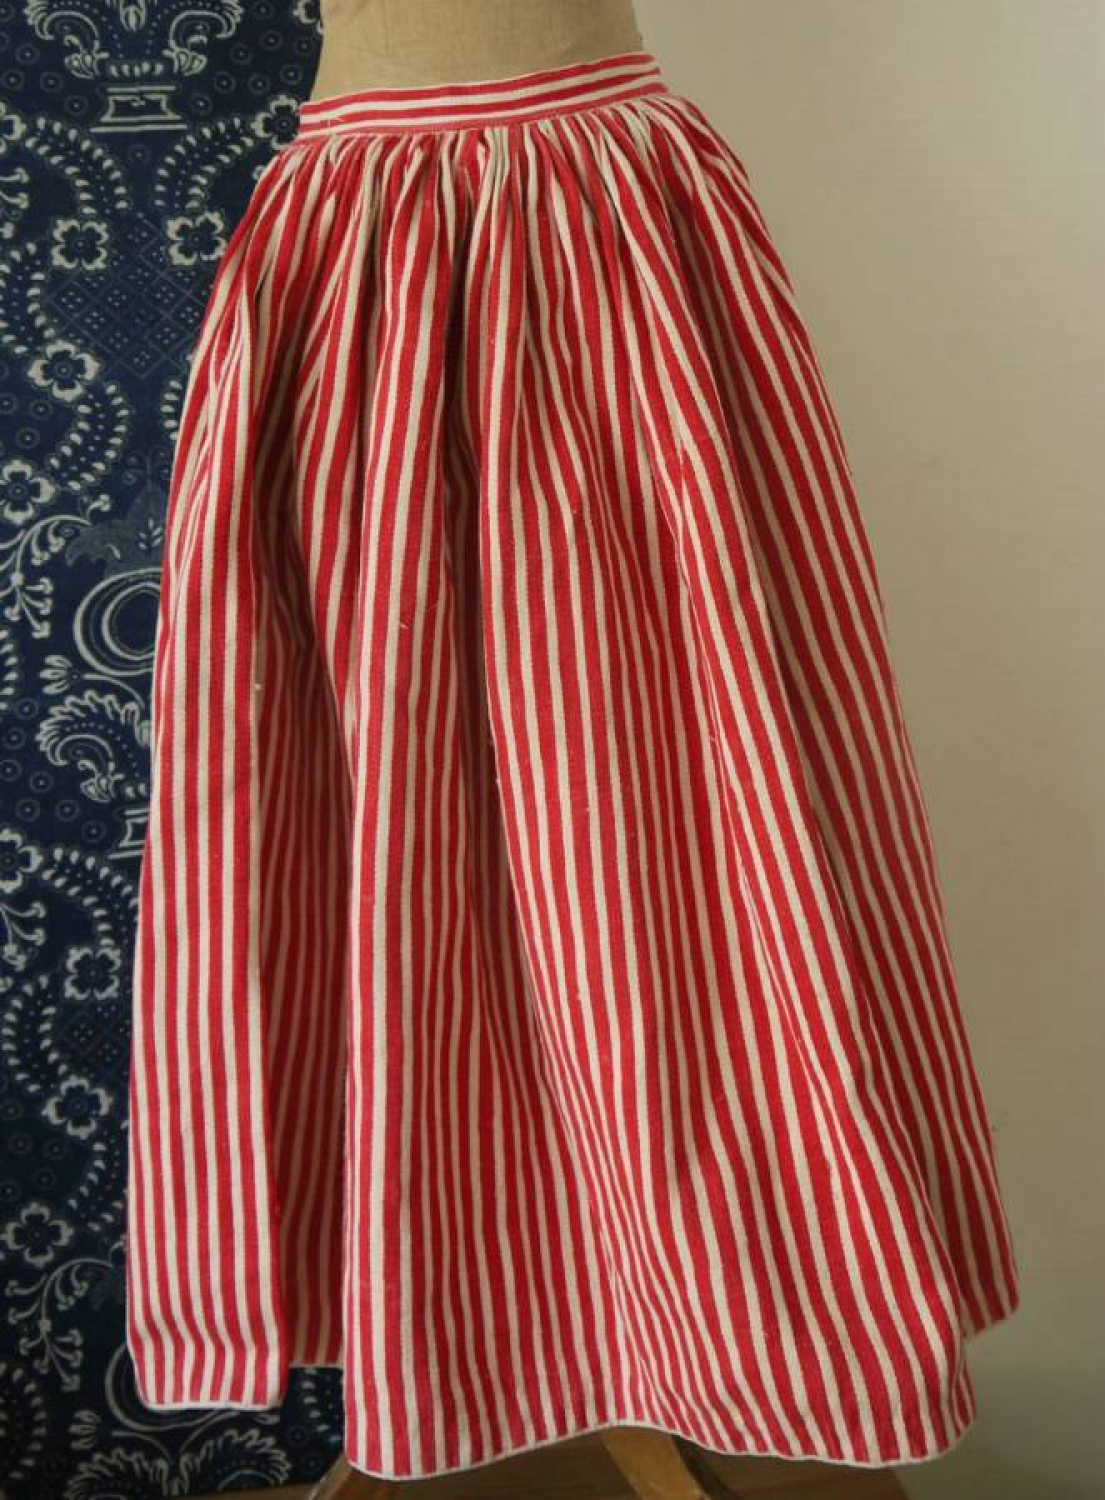 Red Striped Petticoat